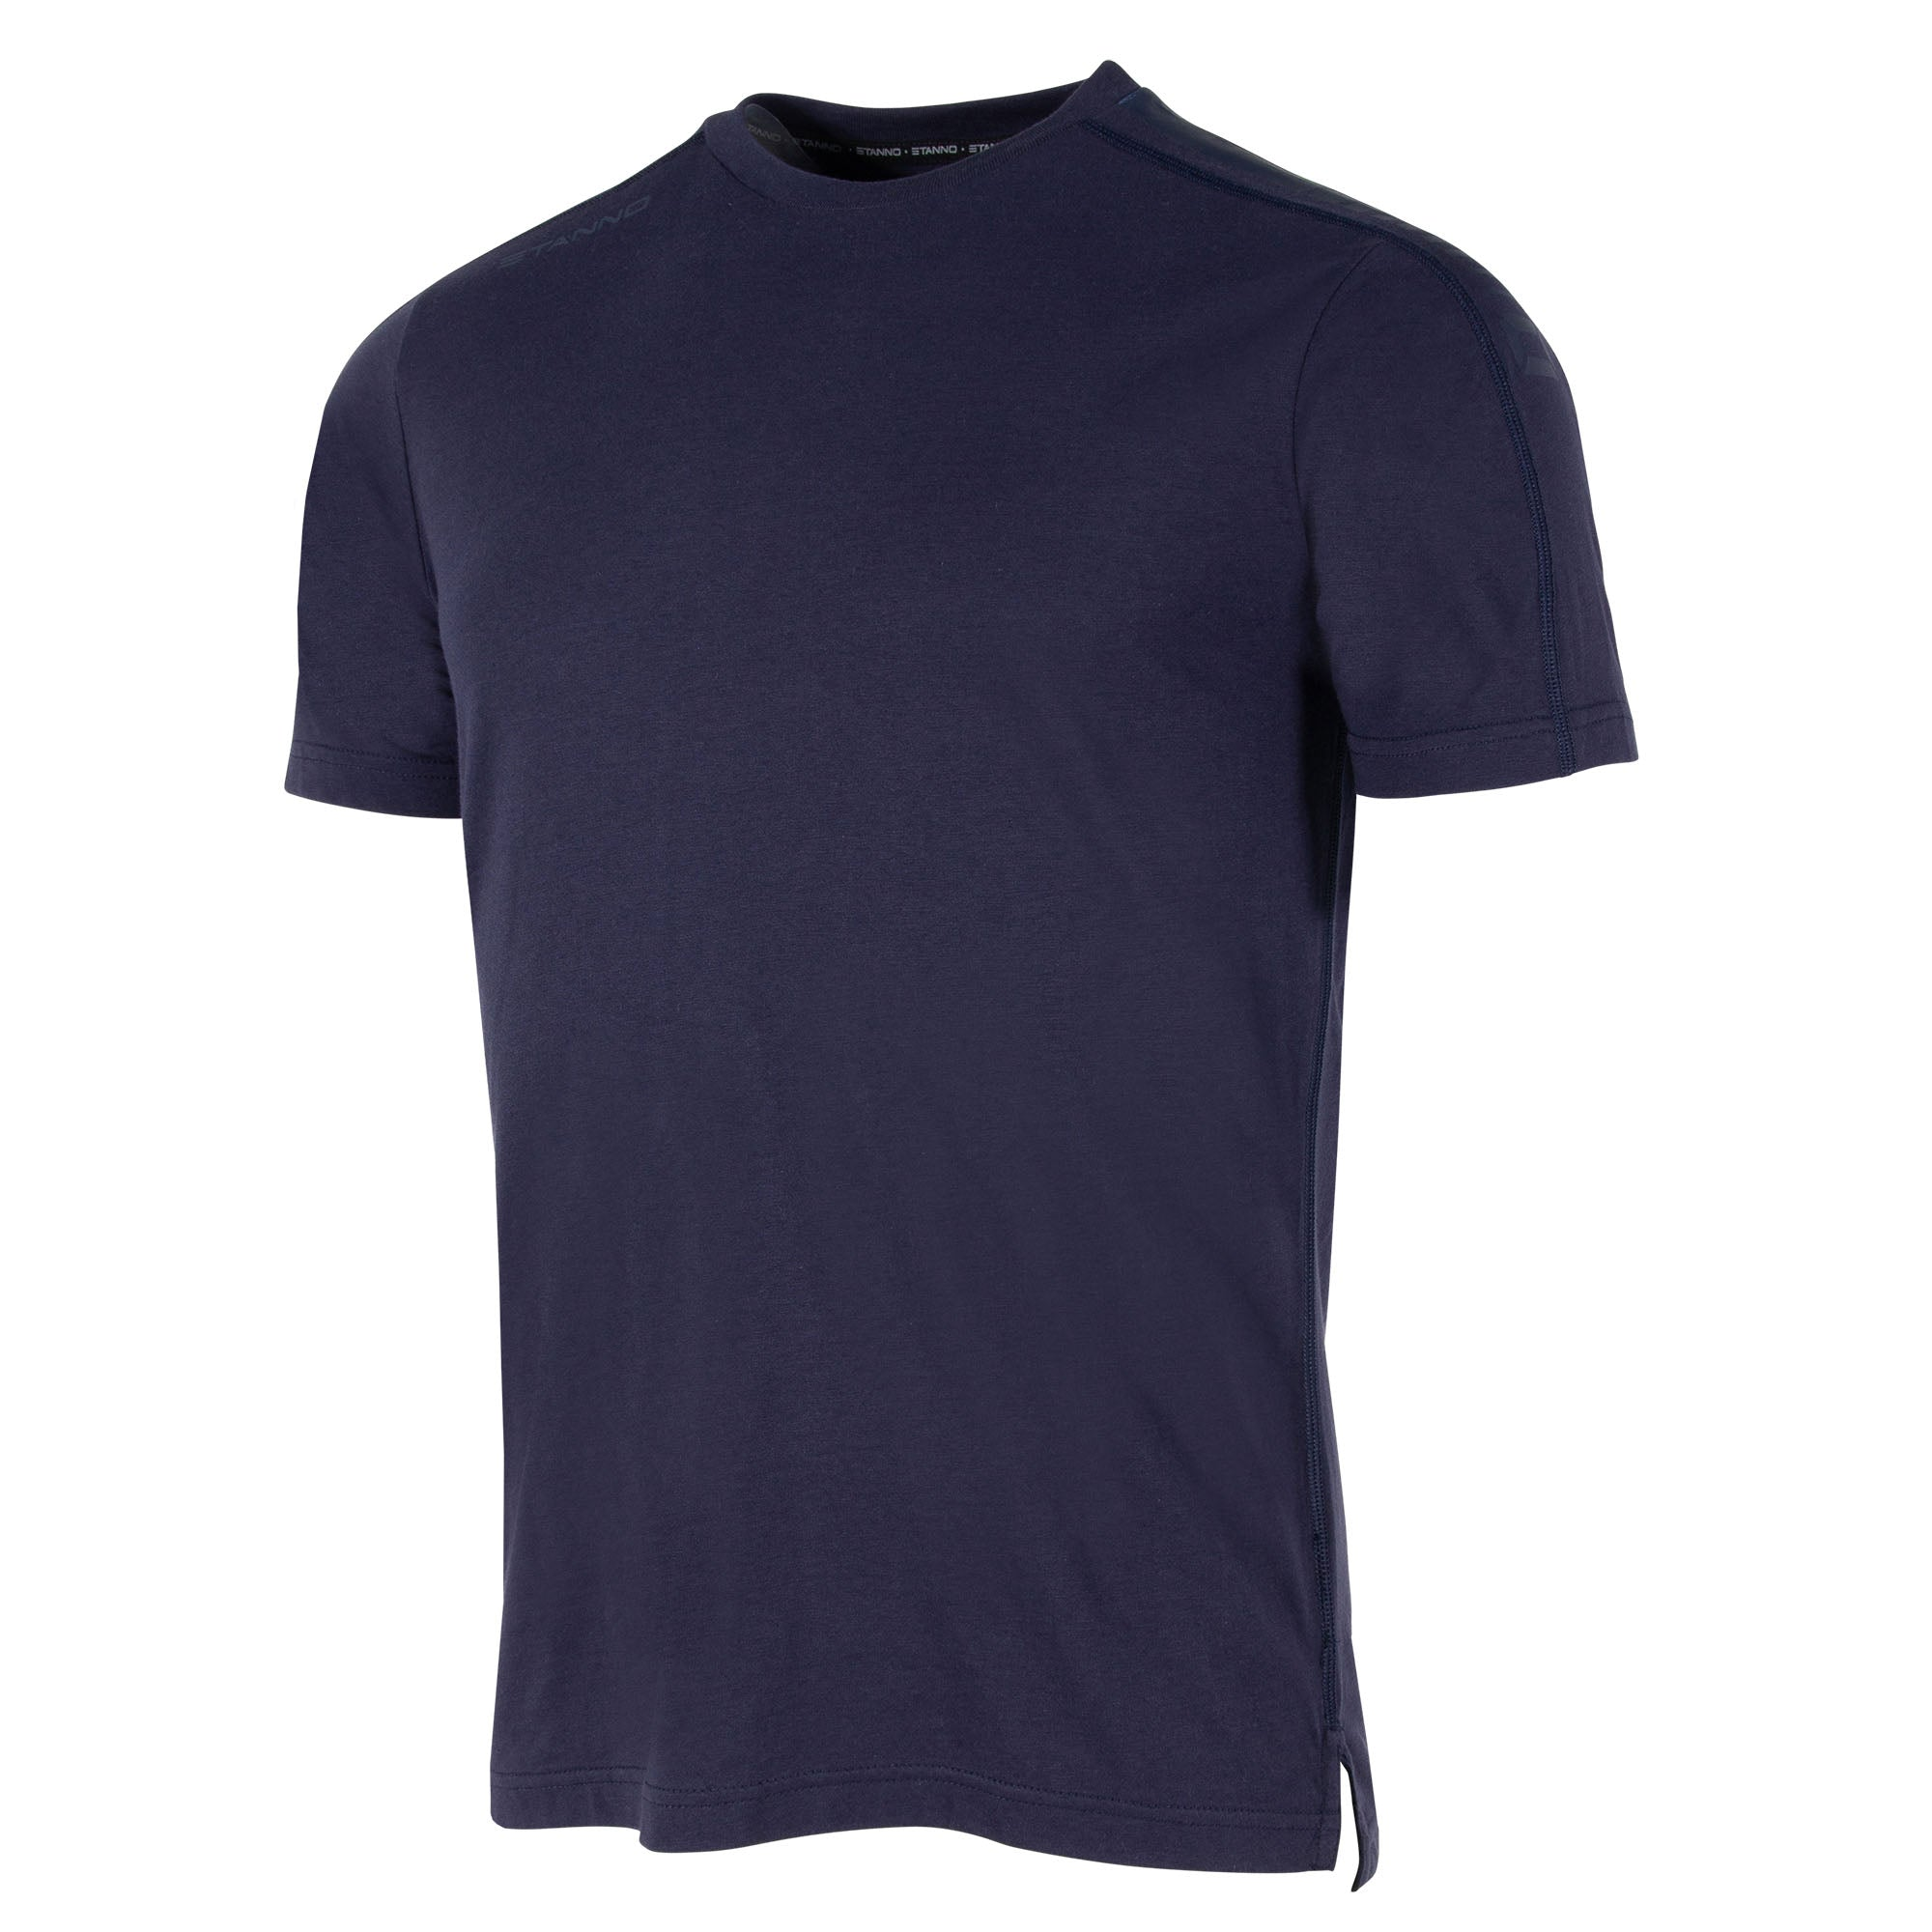 Front view of navy Stanno Ease T-Shirt with round neck, side slit design, and subtle shoulder print.